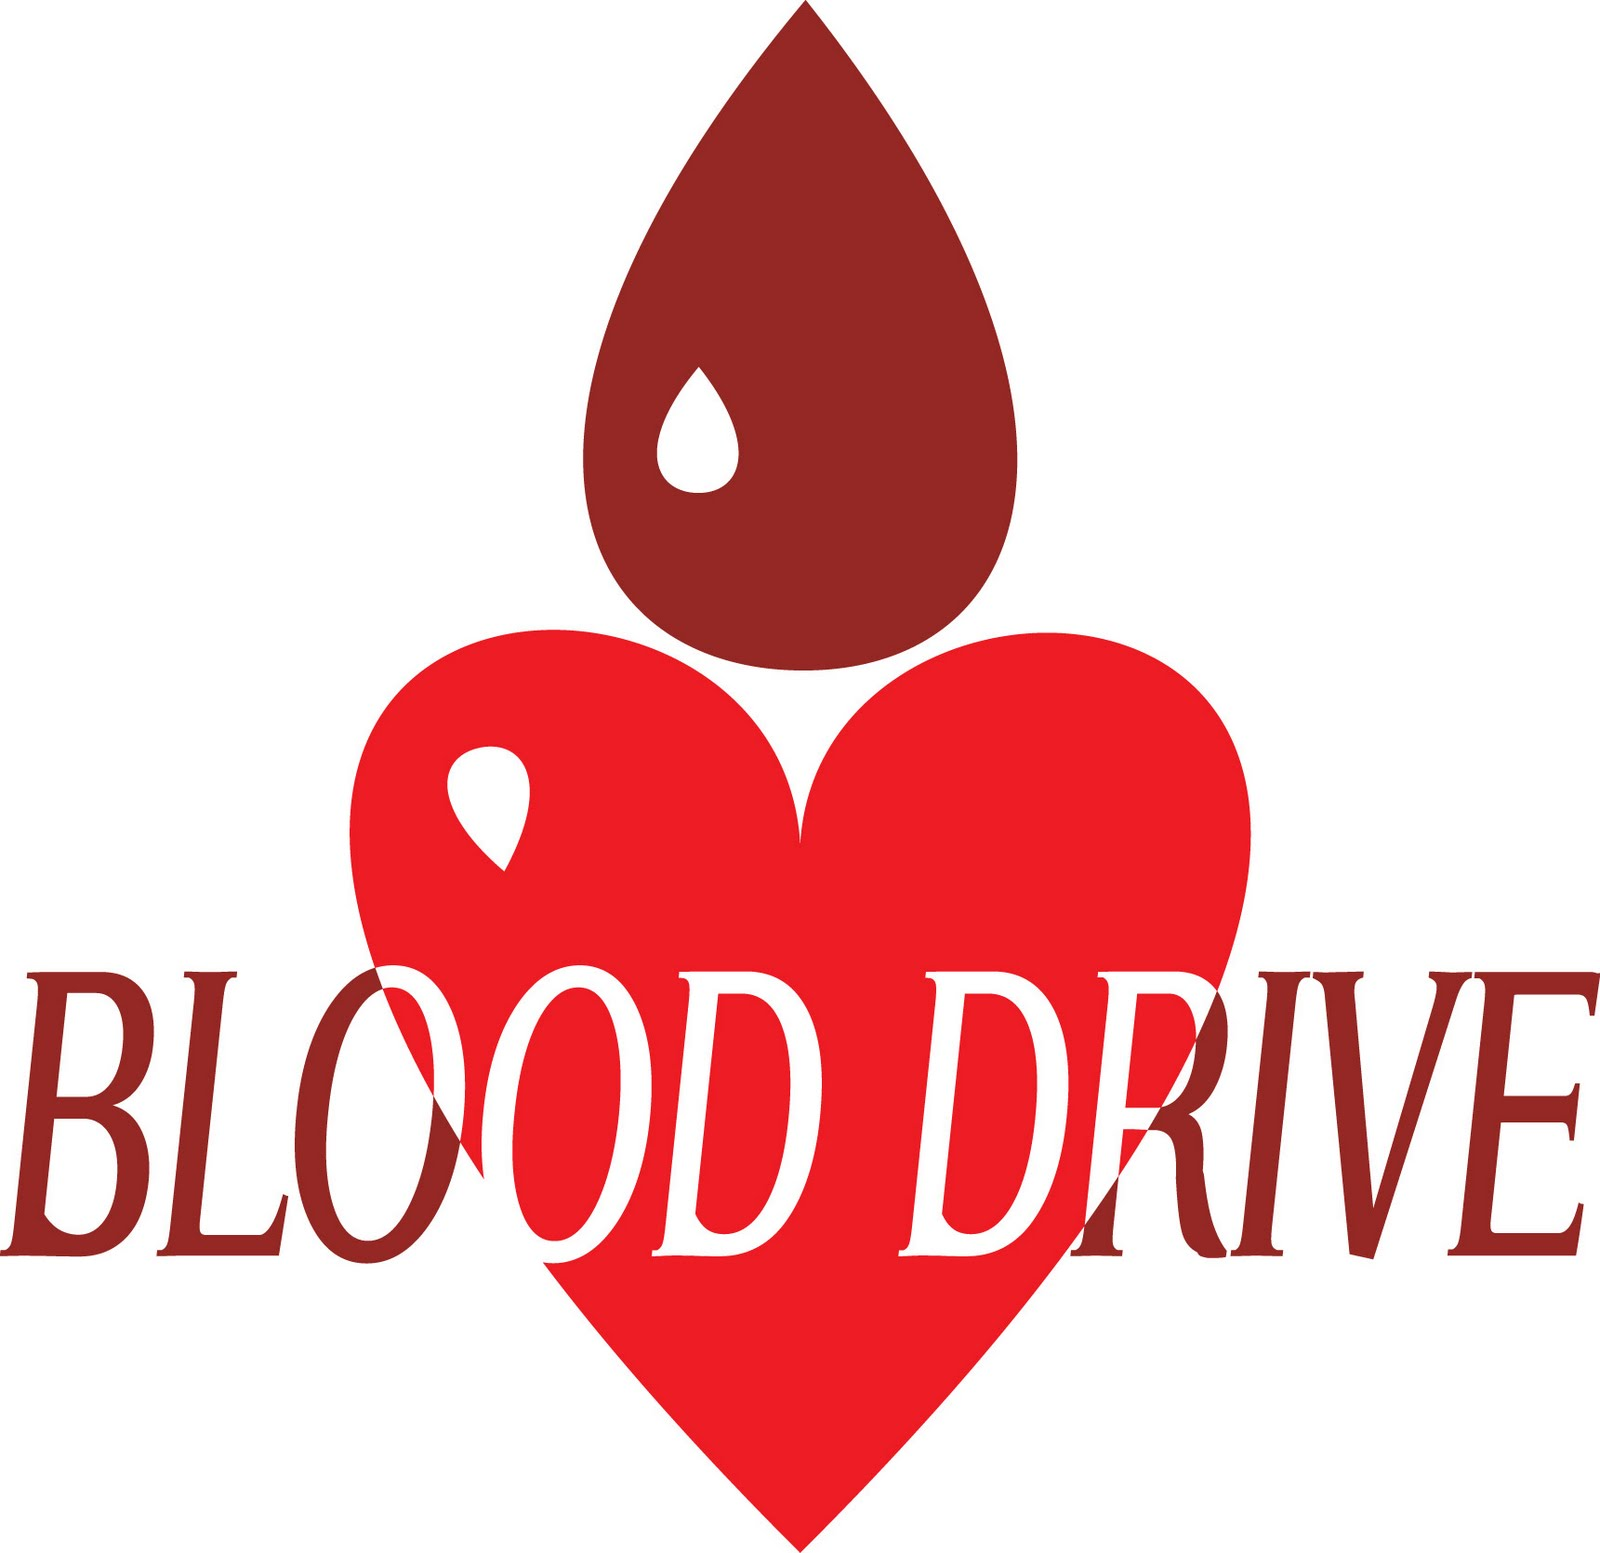 giving blood clipart - photo #26